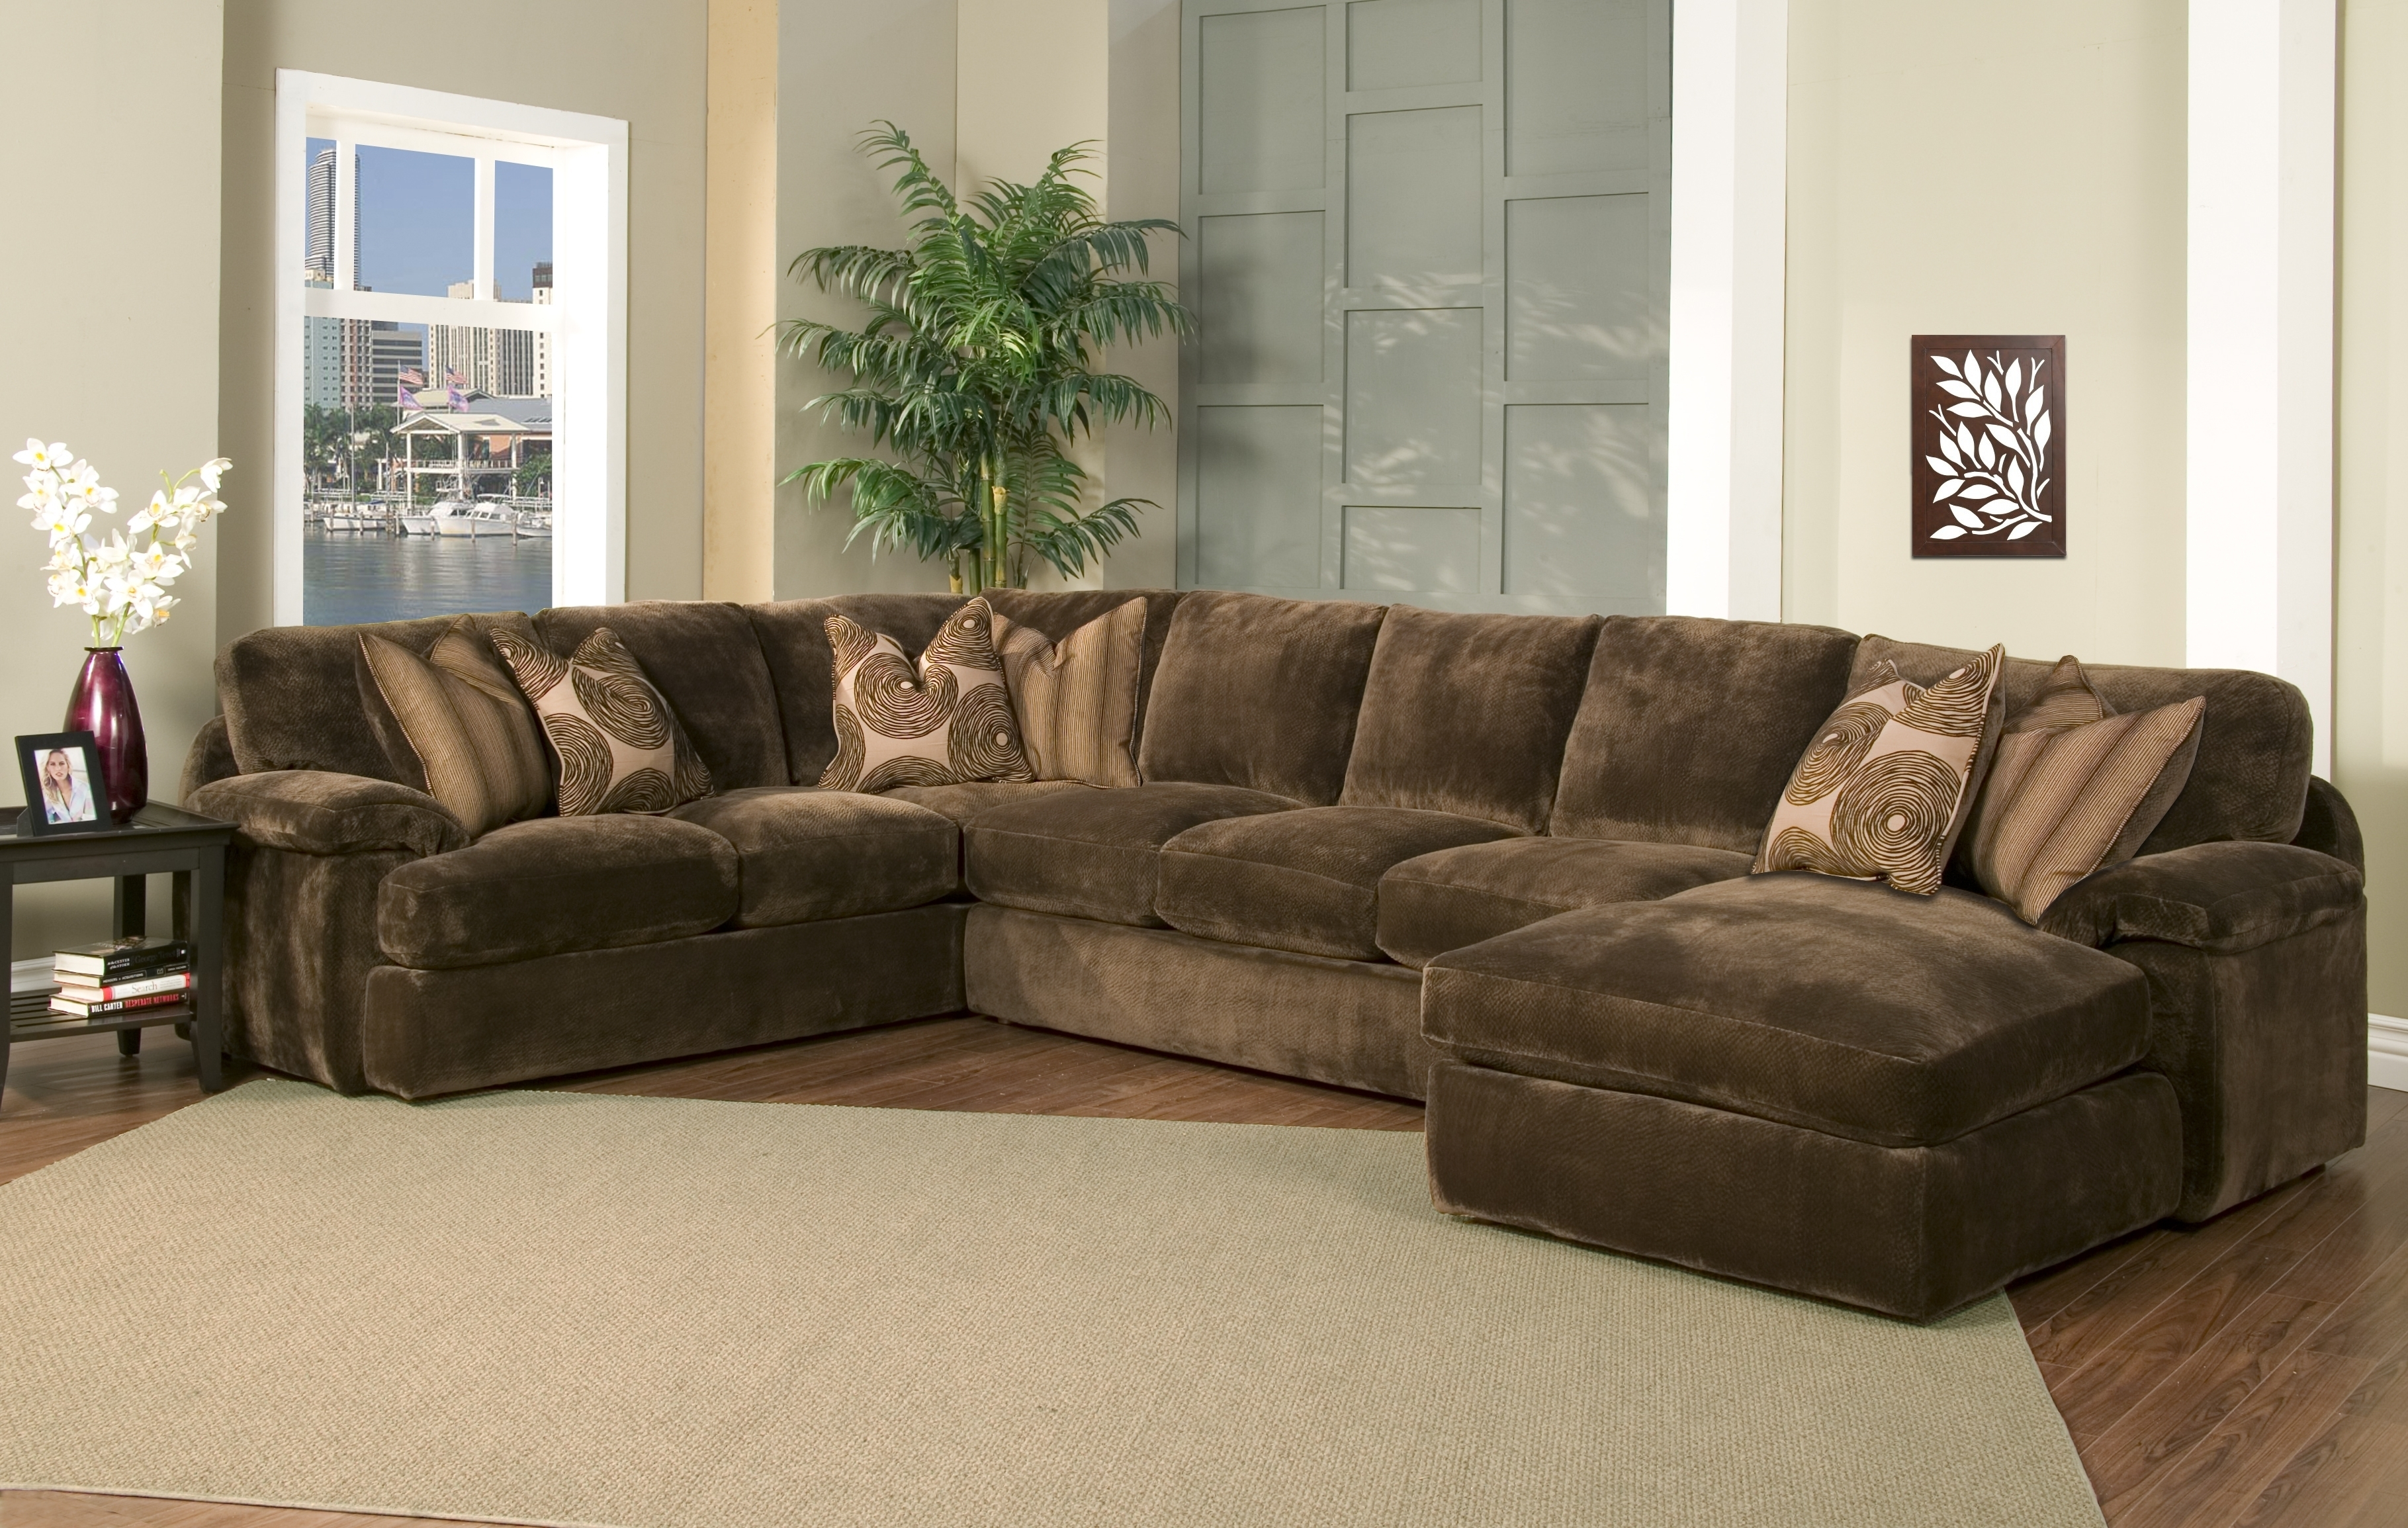 Down Feather Sectional Sofa • Sectional Sofa Regarding Down Feather Sectional Sofas (Image 3 of 10)